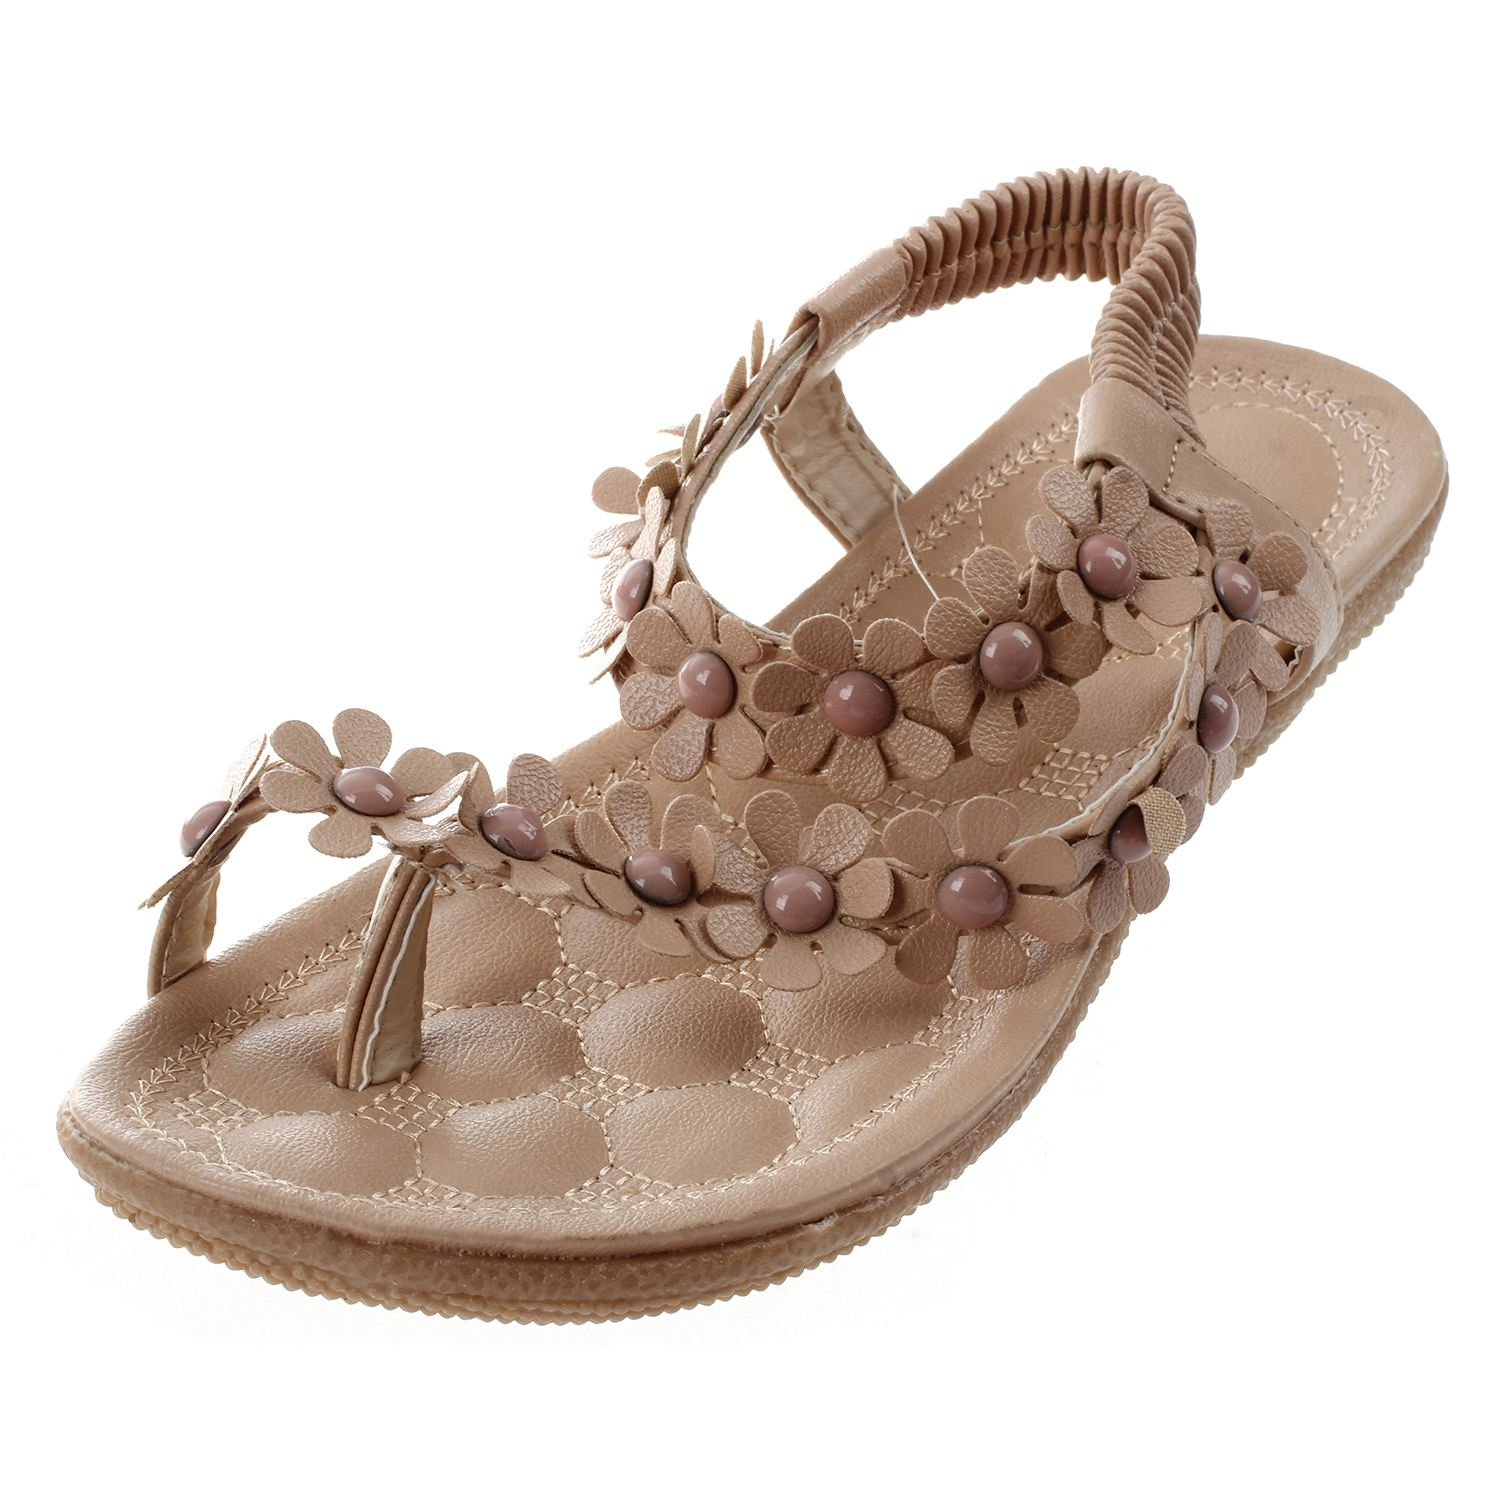 SODIAL(R) New Flip-flop sandals open toe flip women's shoes flat flats bohemia flower beaded soft outsole sweet for women 669 Beige US6.5=EUR37=feet length 23.5CM 044913C3